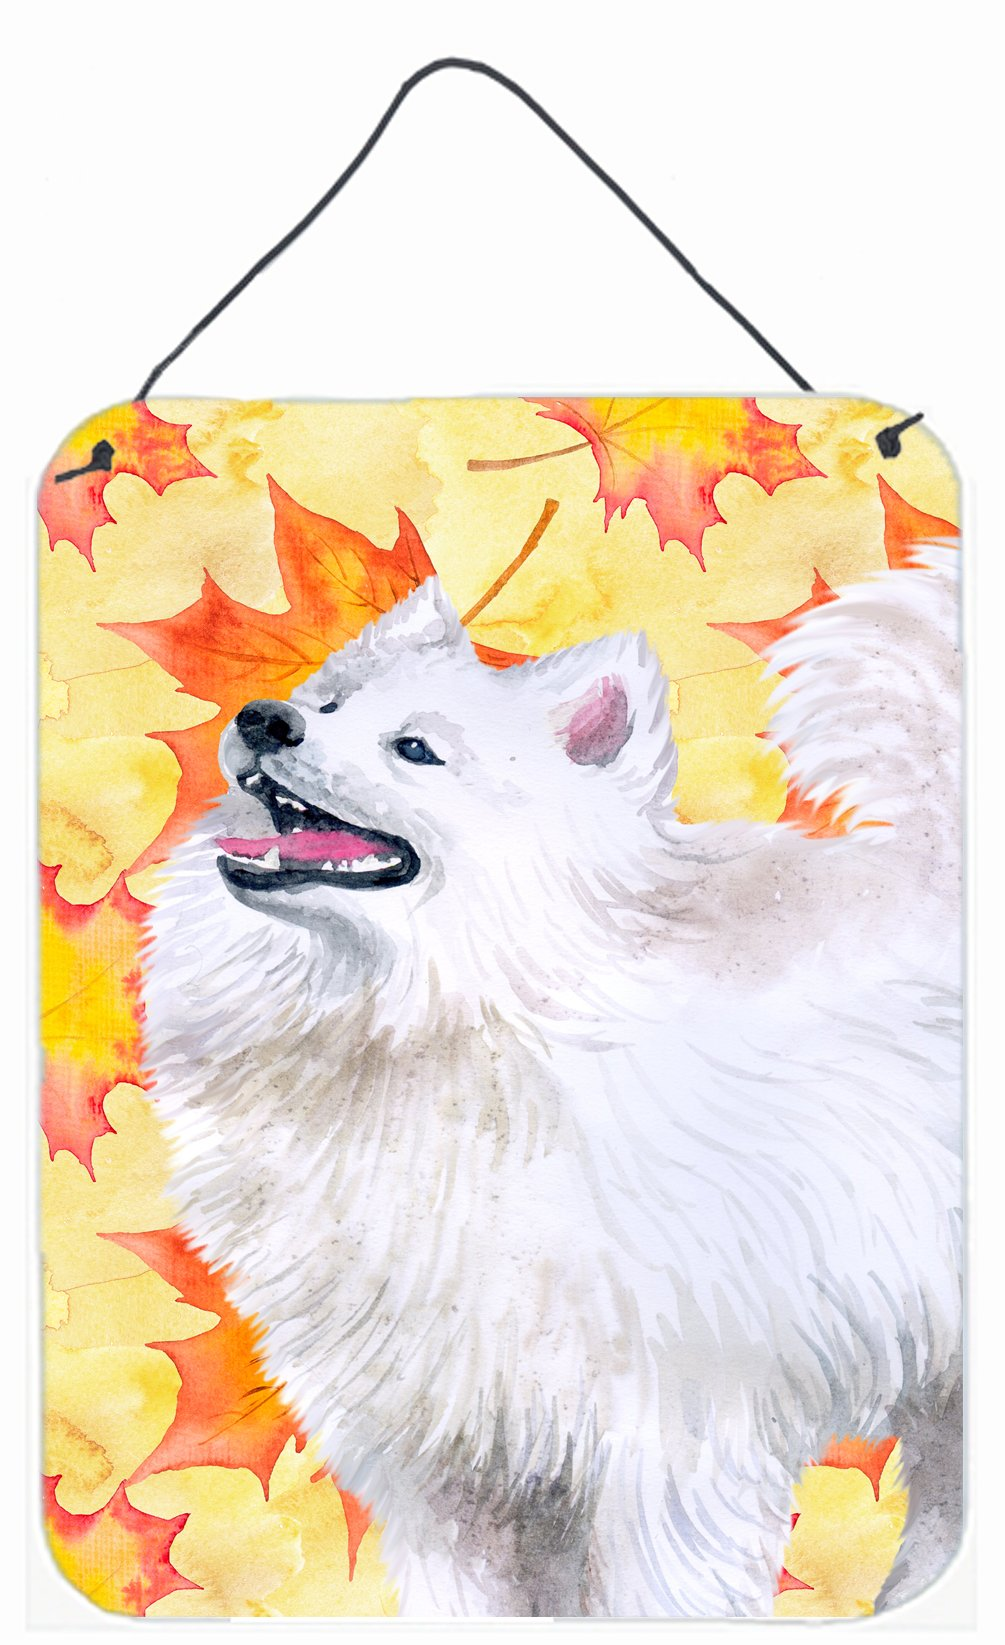 Samoyed Fall Wall or Door Hanging Prints BB9952DS1216 by Caroline's Treasures